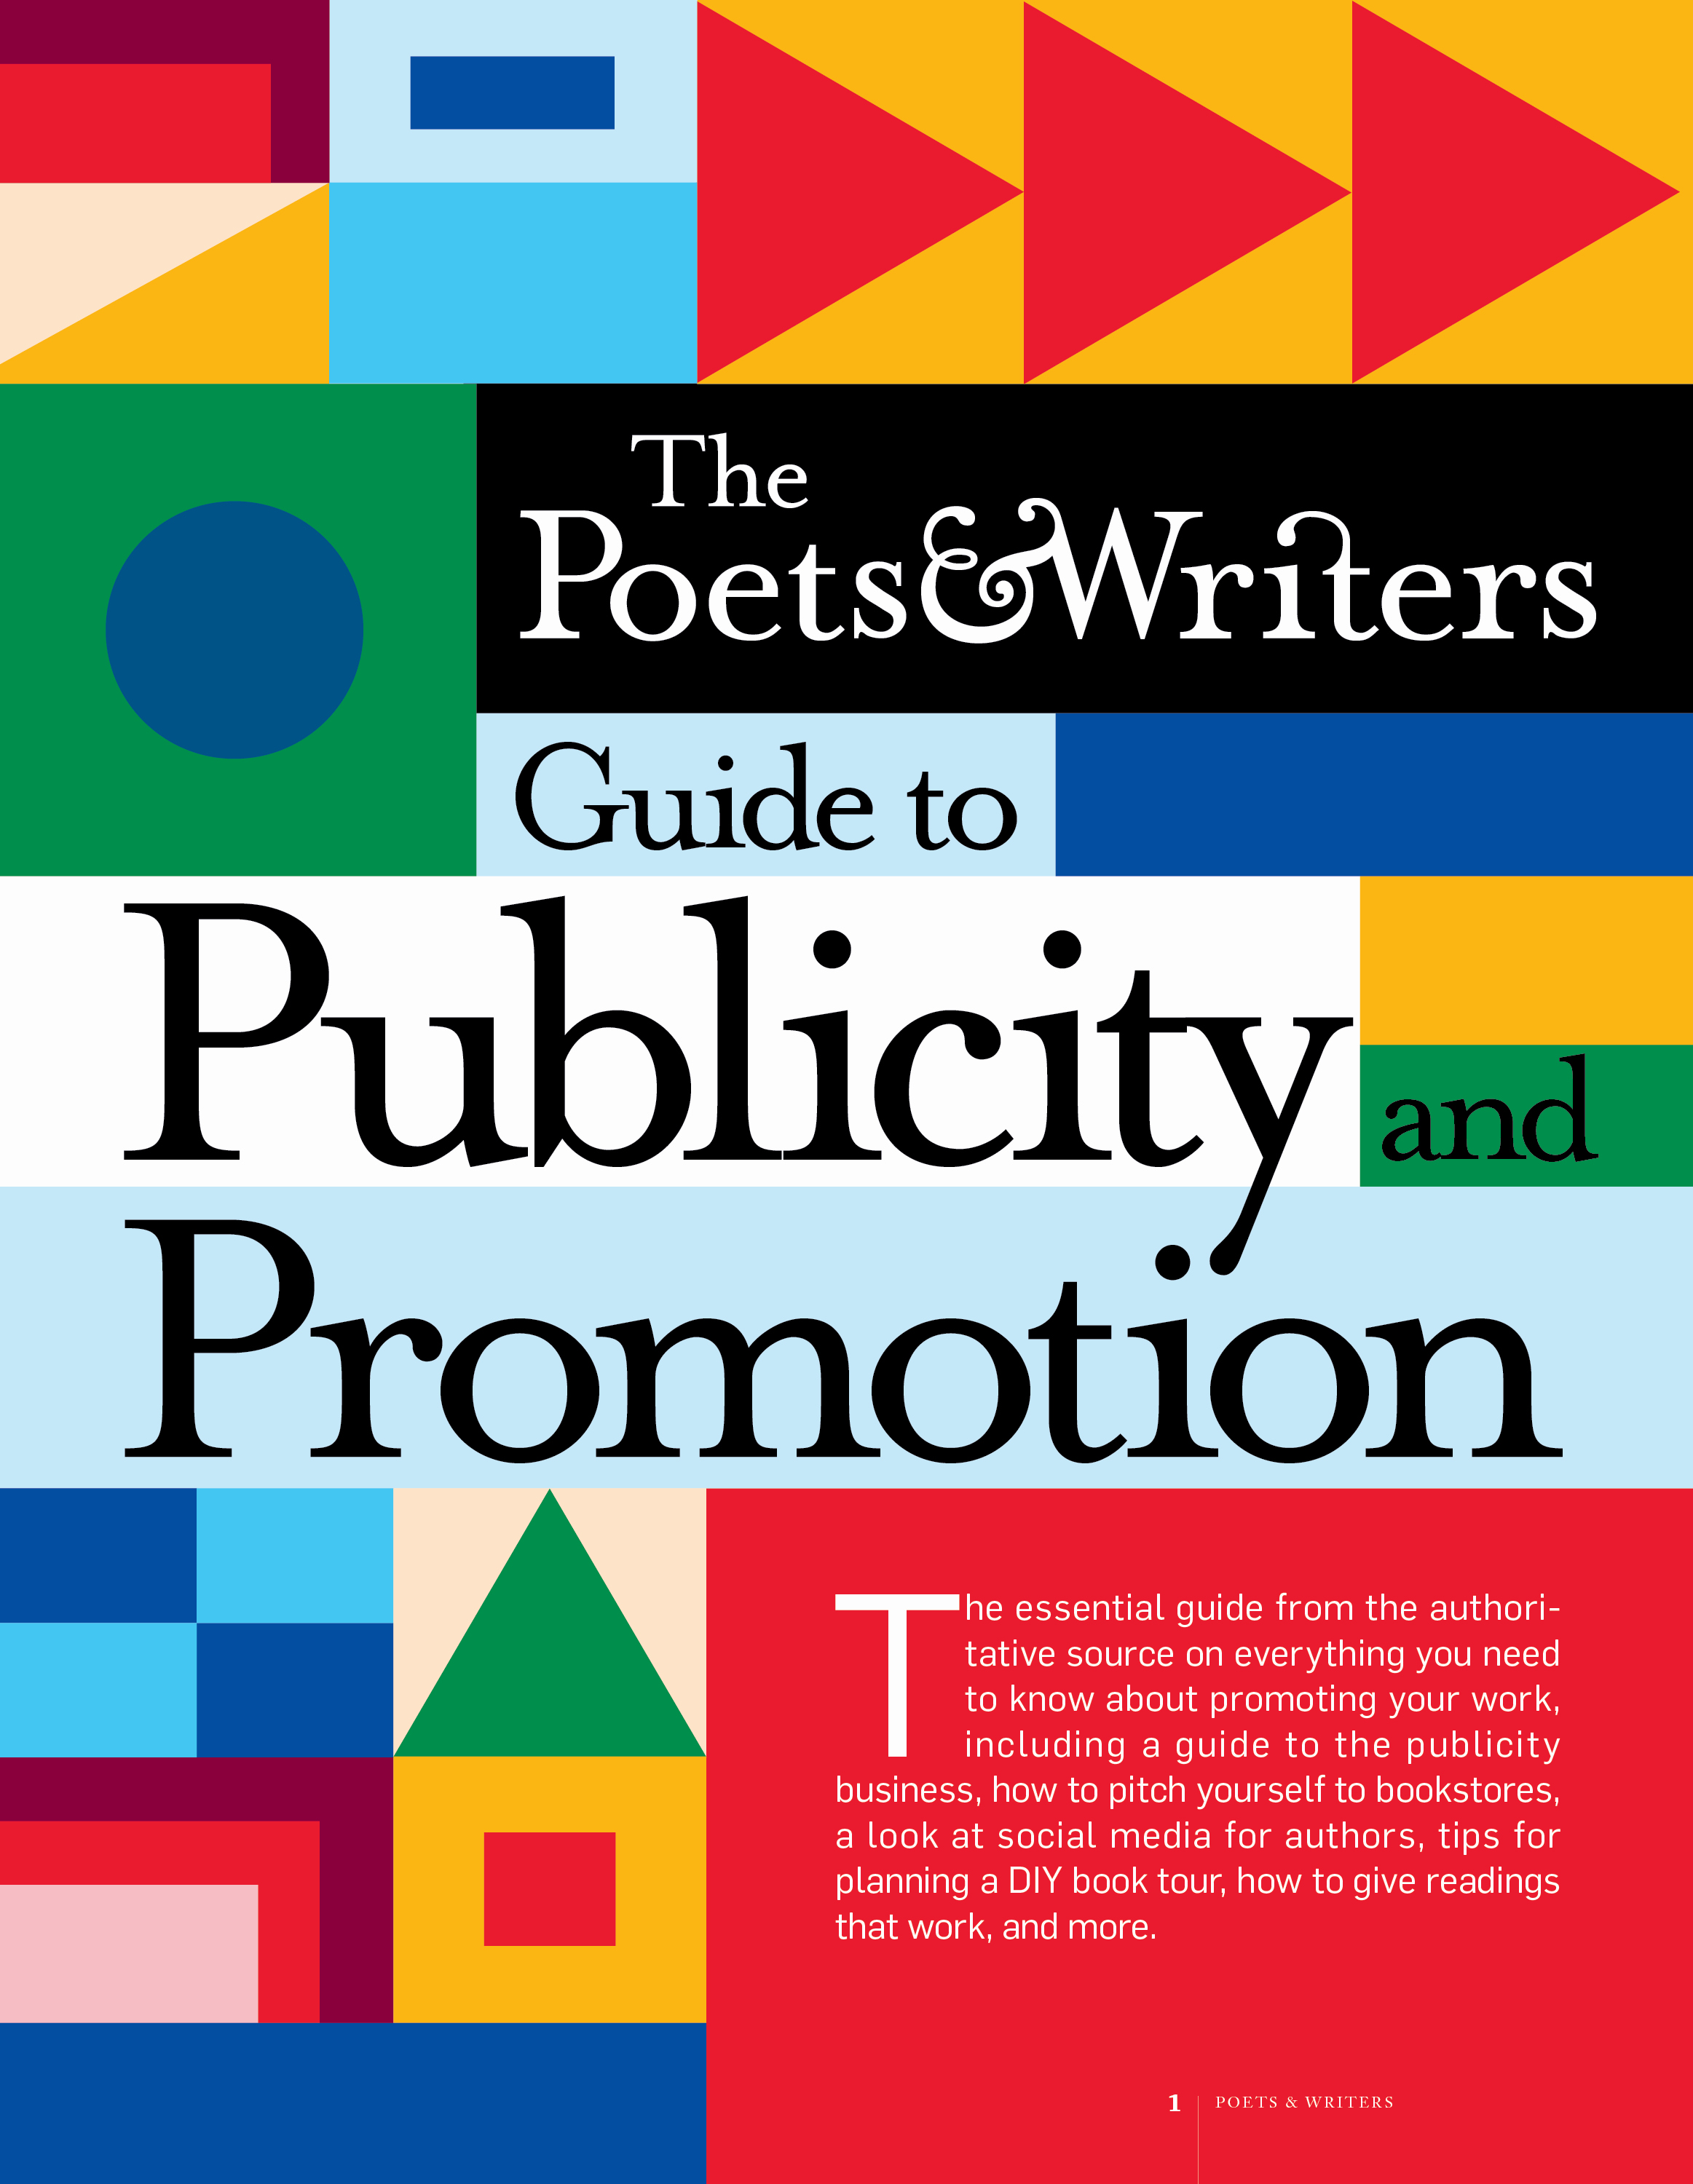 The Poets & Writers Guide to Publicity and Promotion